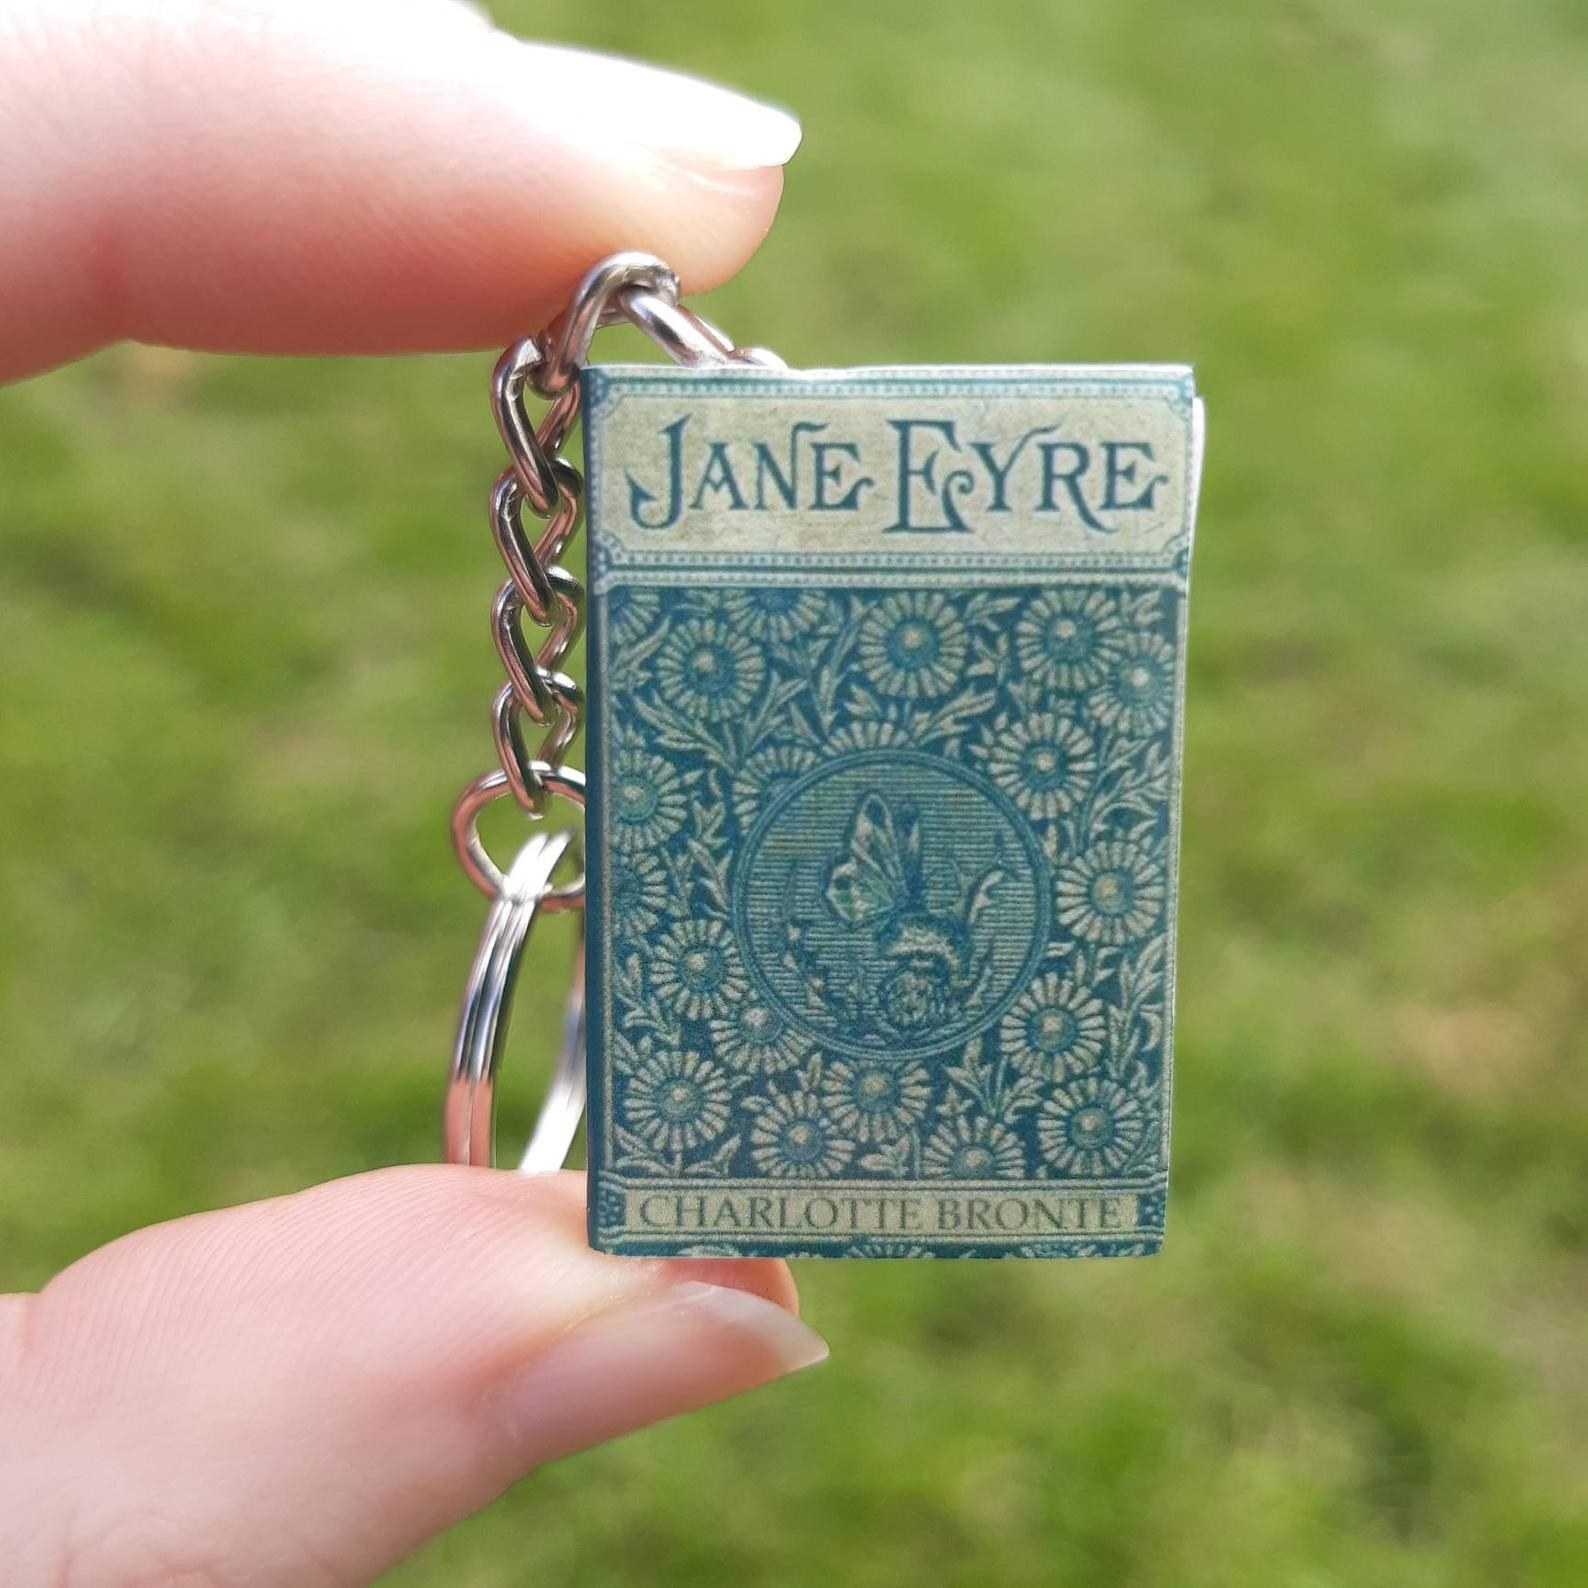 The tiny book keychain of Jane Eyre